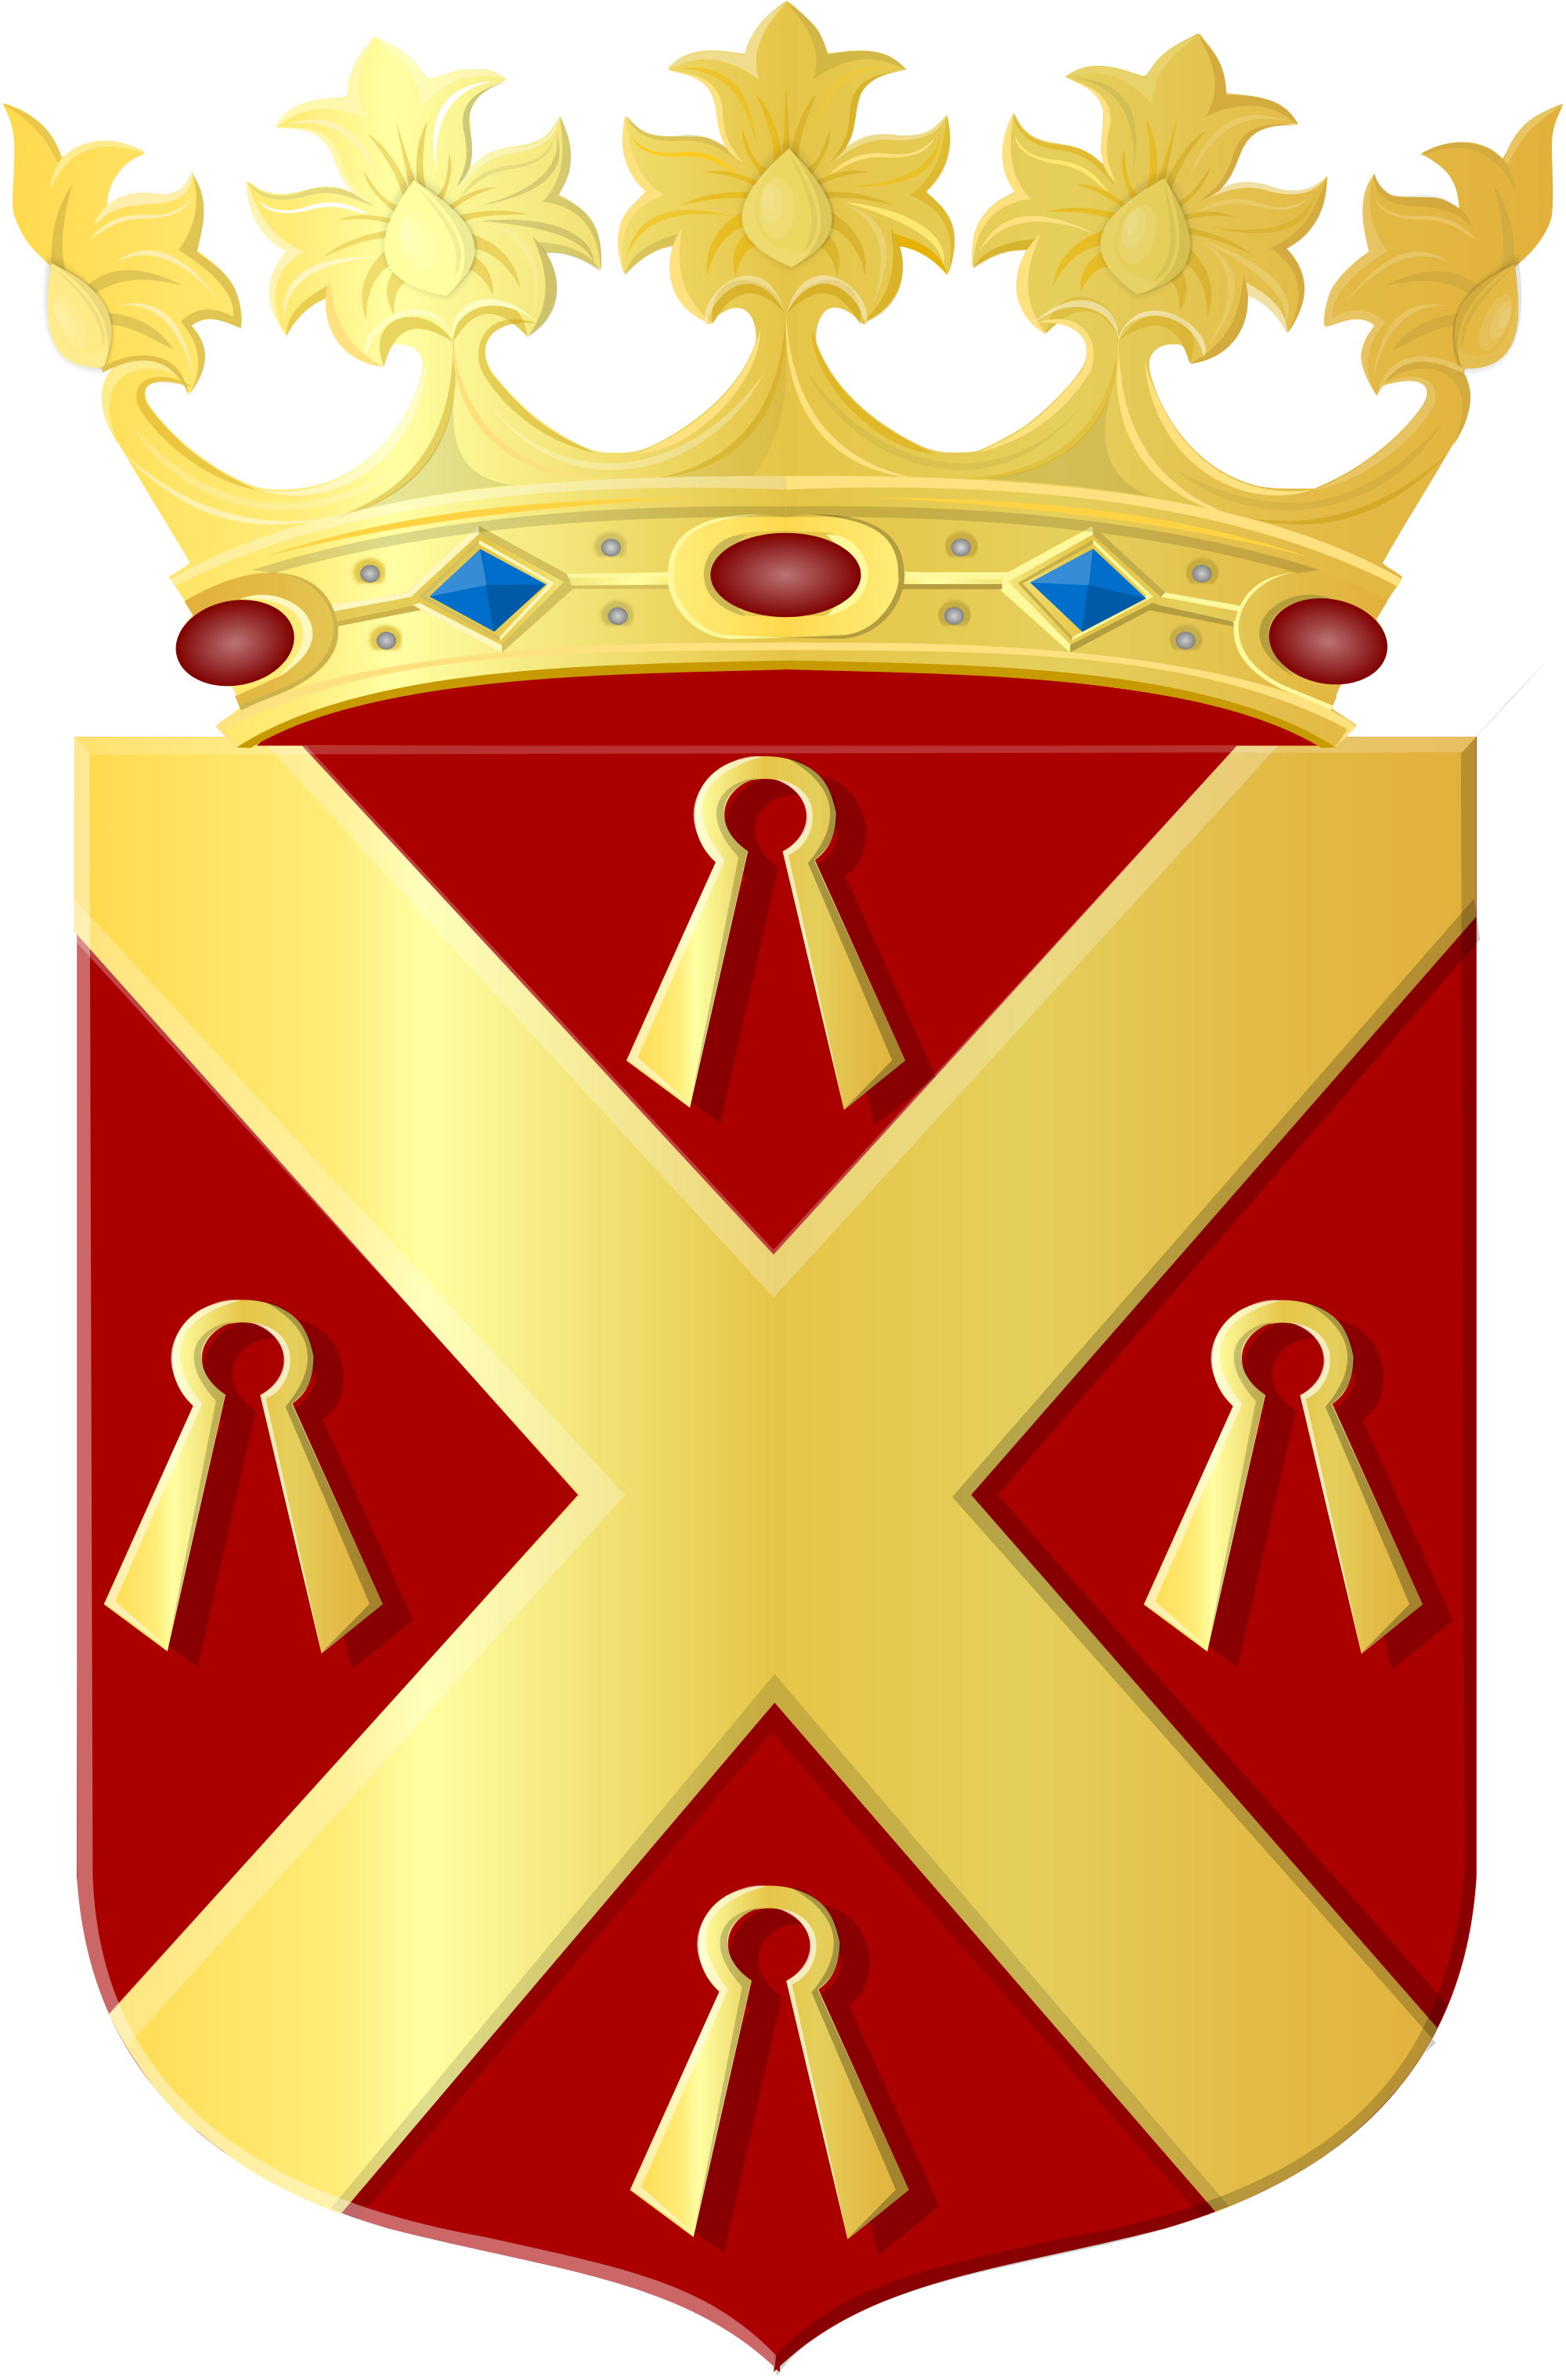 File:Coat of arms of Wijchen.svg.